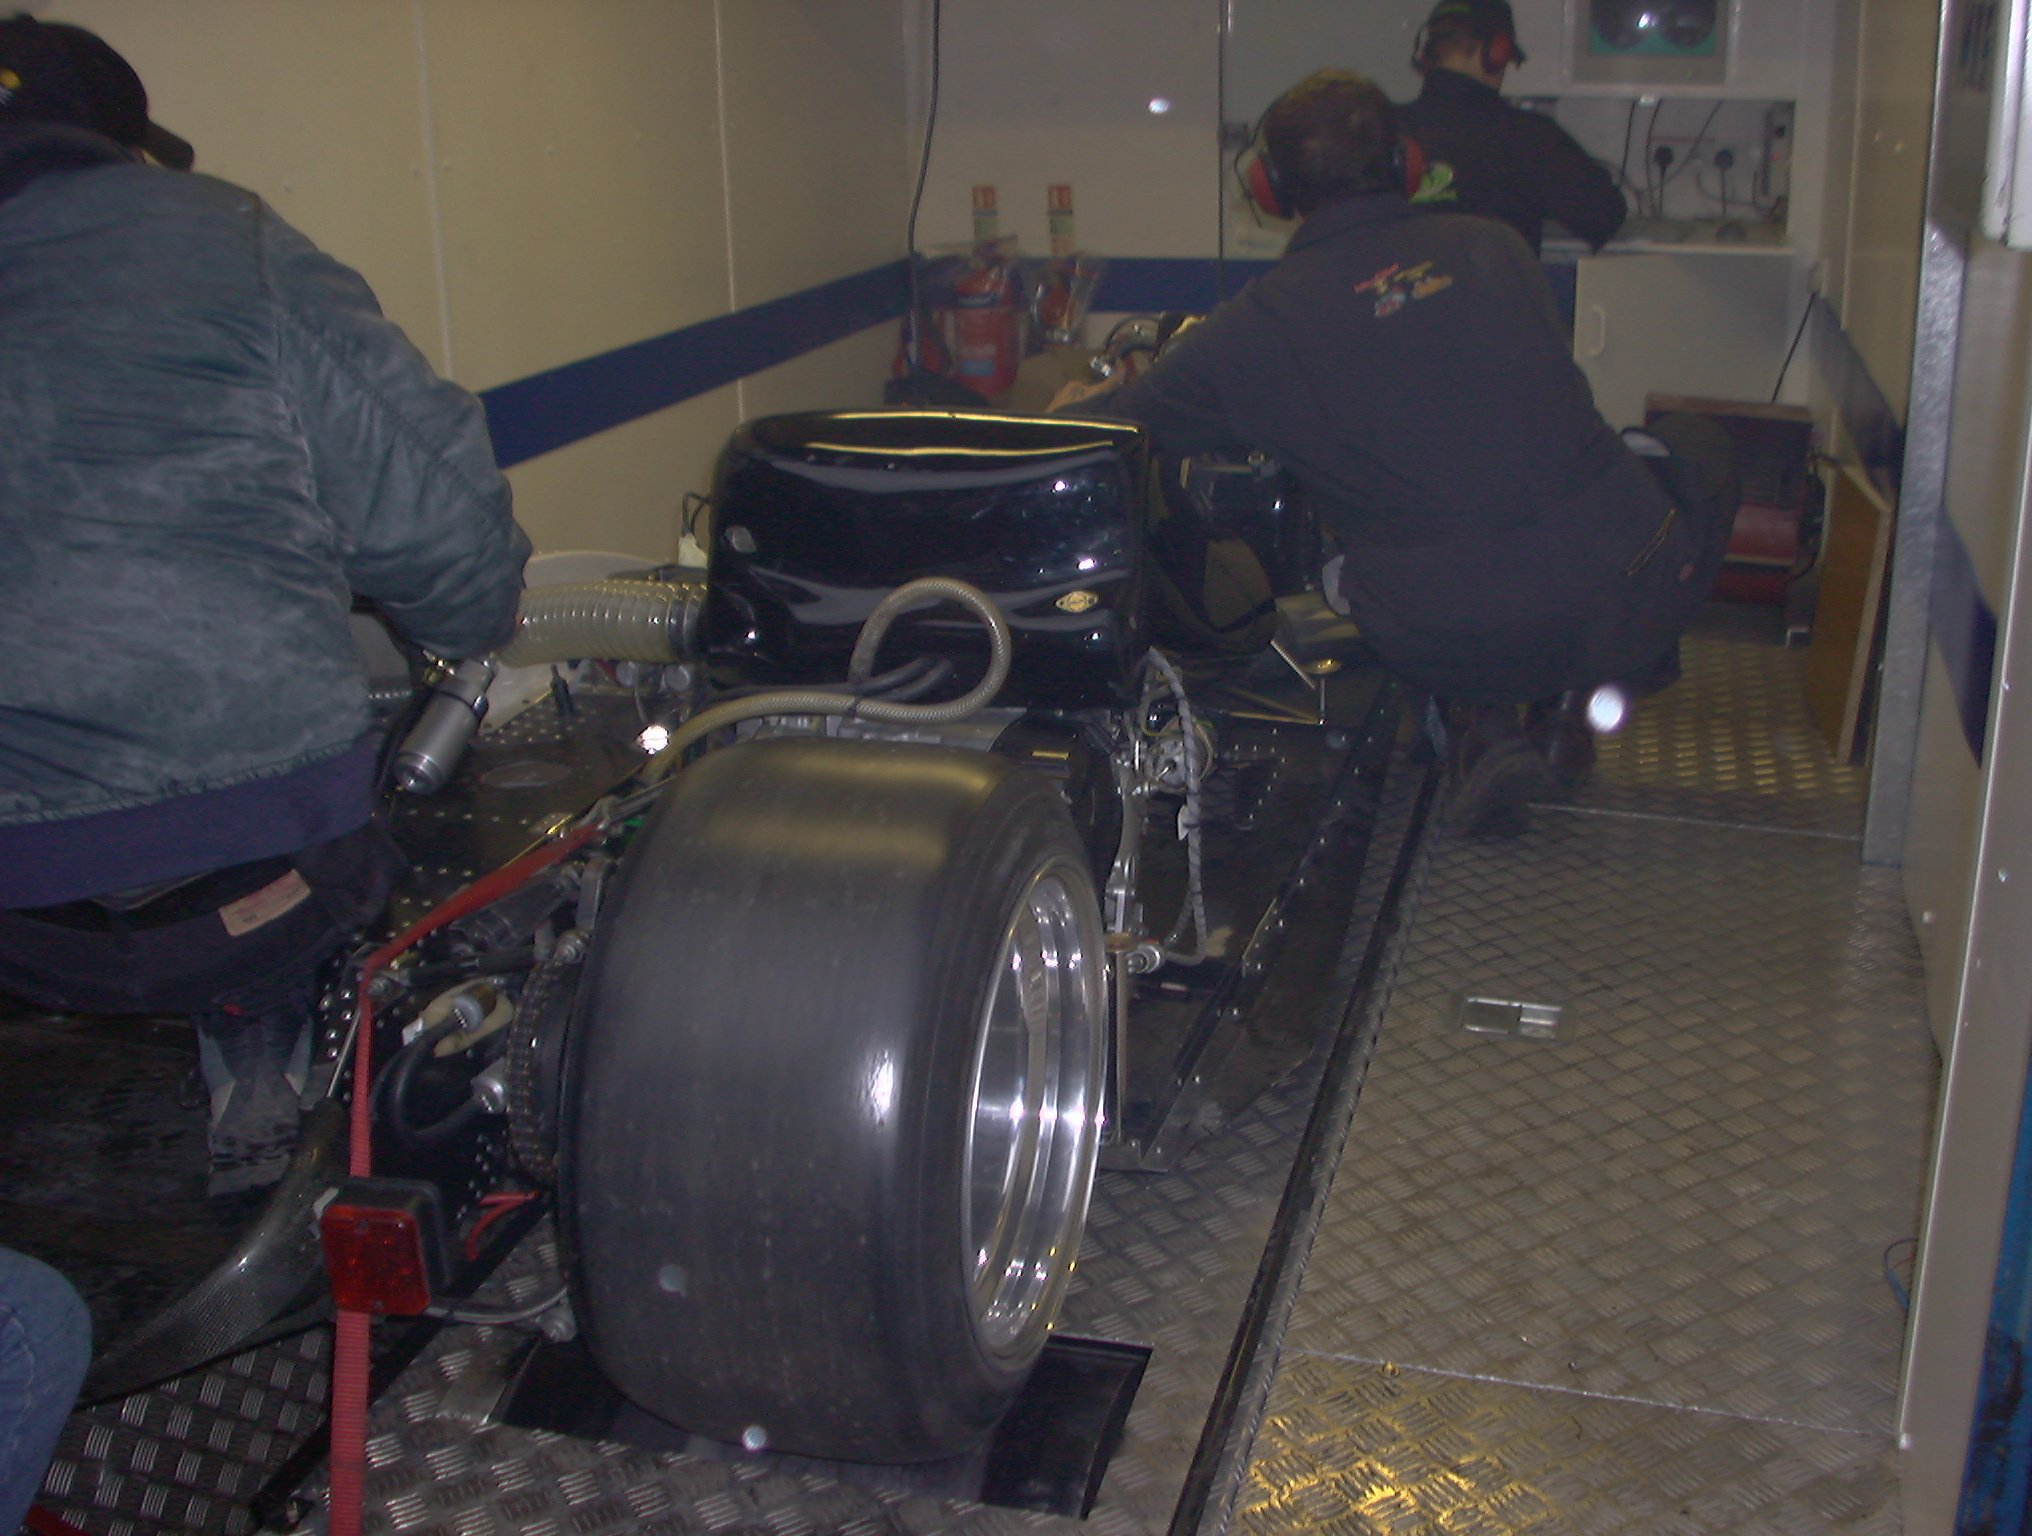 M & M F2 SIDECAR OUTFIT FLAT OUT ON DYNO GOD THE SOUND!